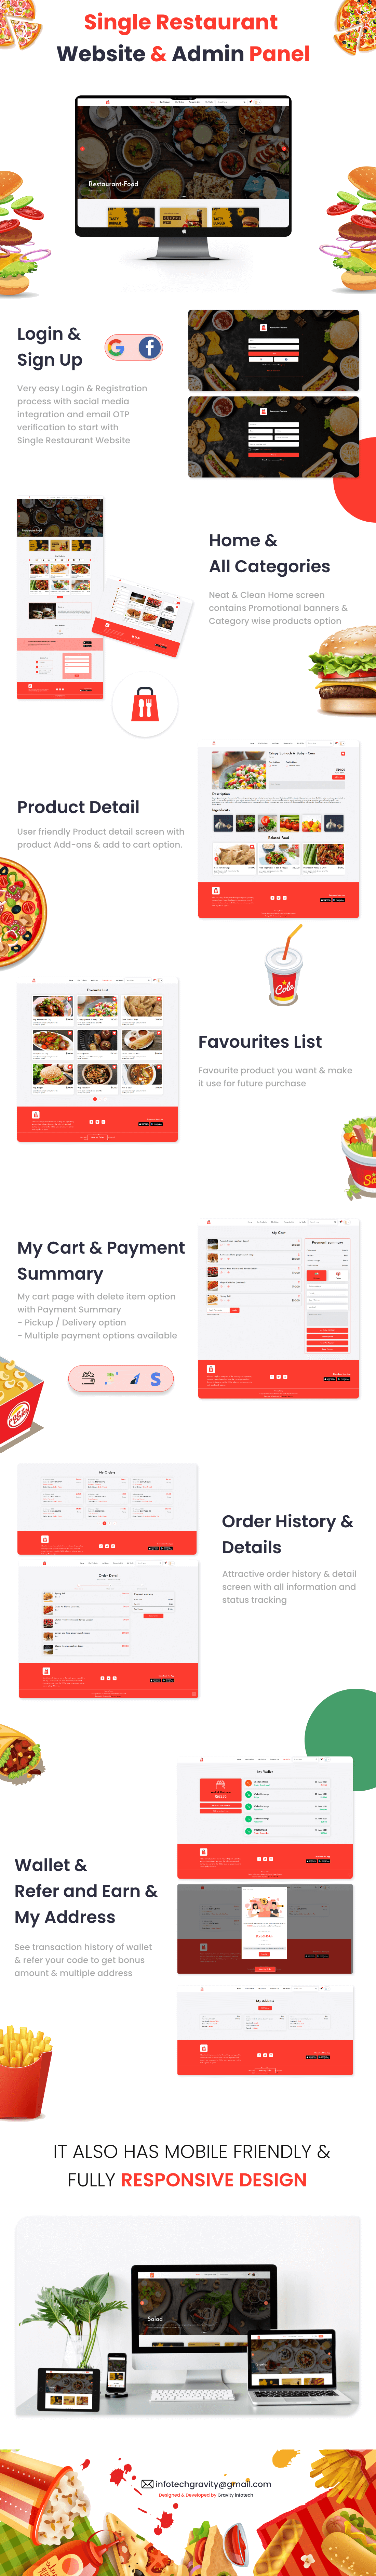 Single restaurant food ordering Website and Delivery Boy App with Admin Panel - 9